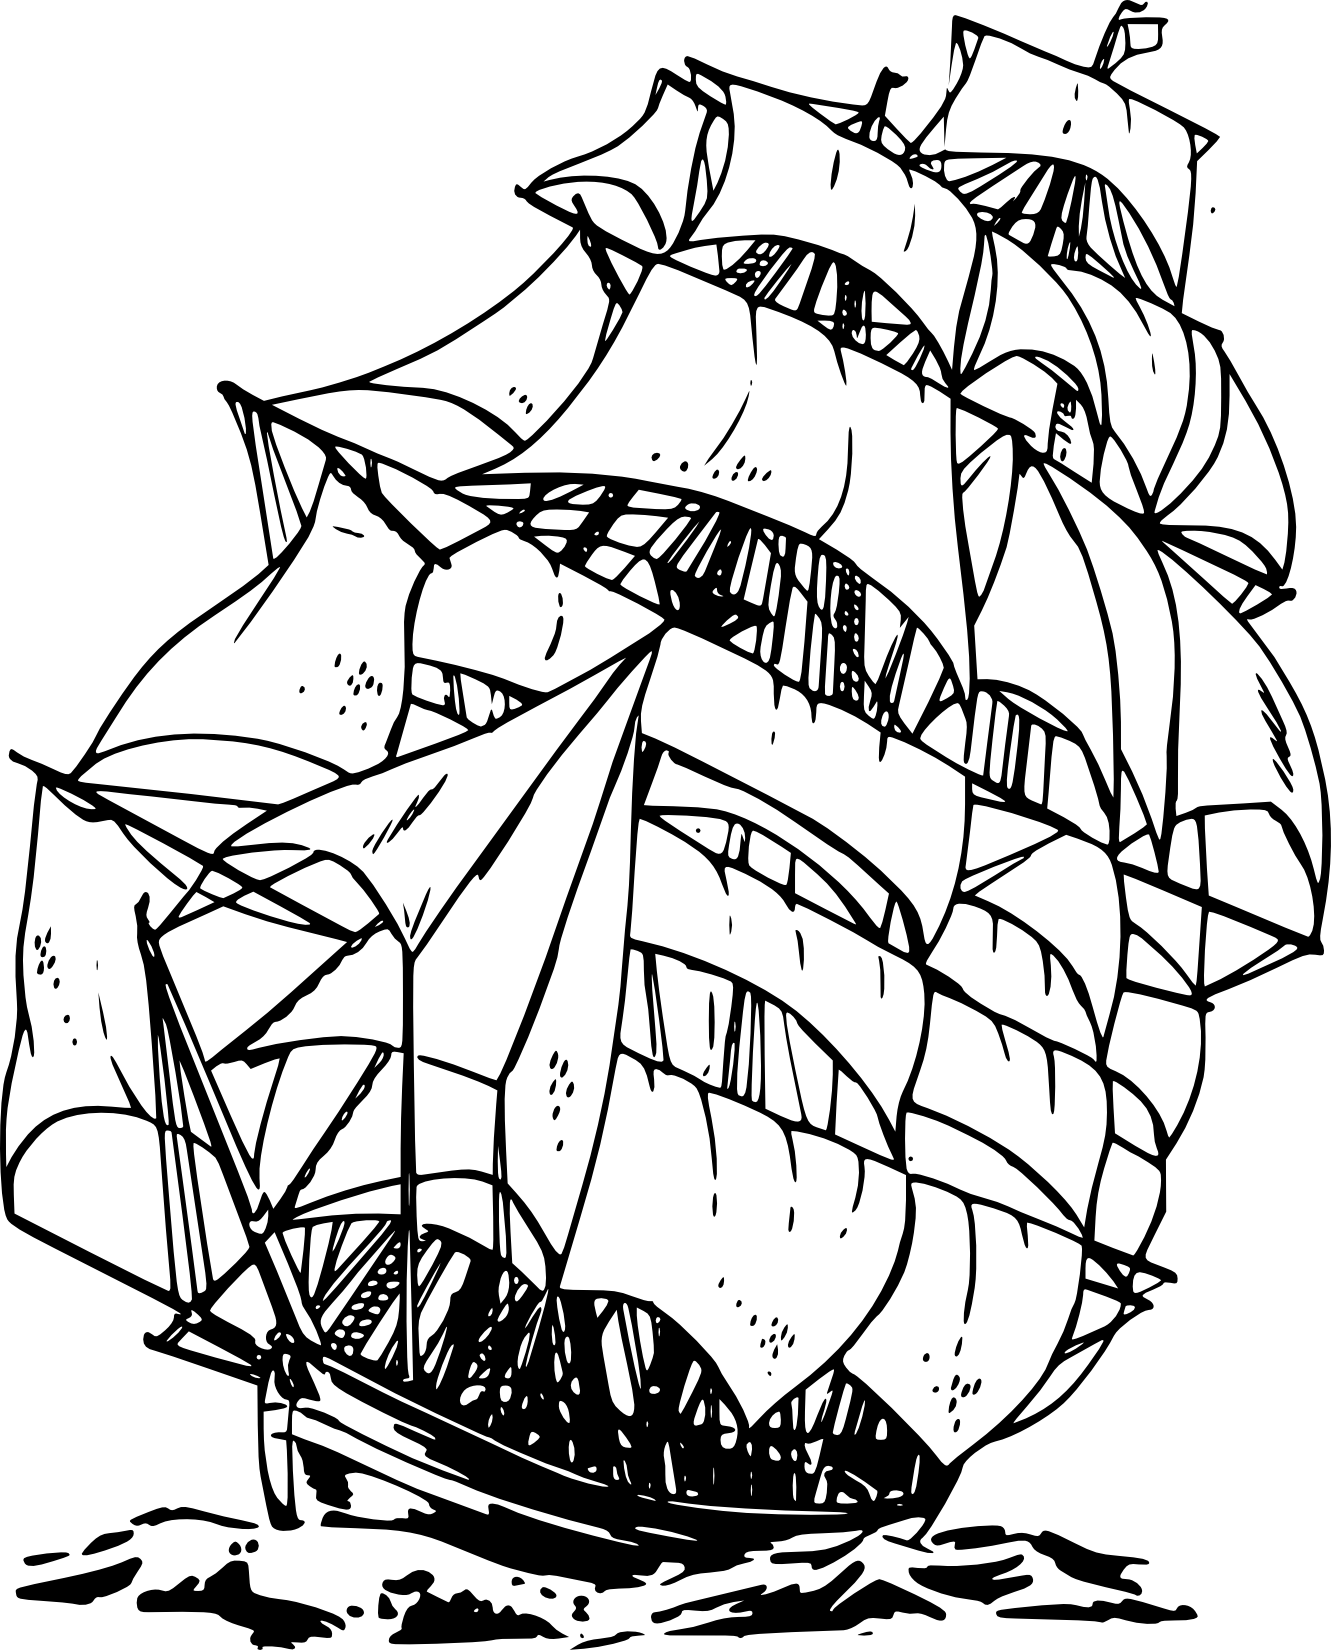 Pirate ship clipart black and white free 5